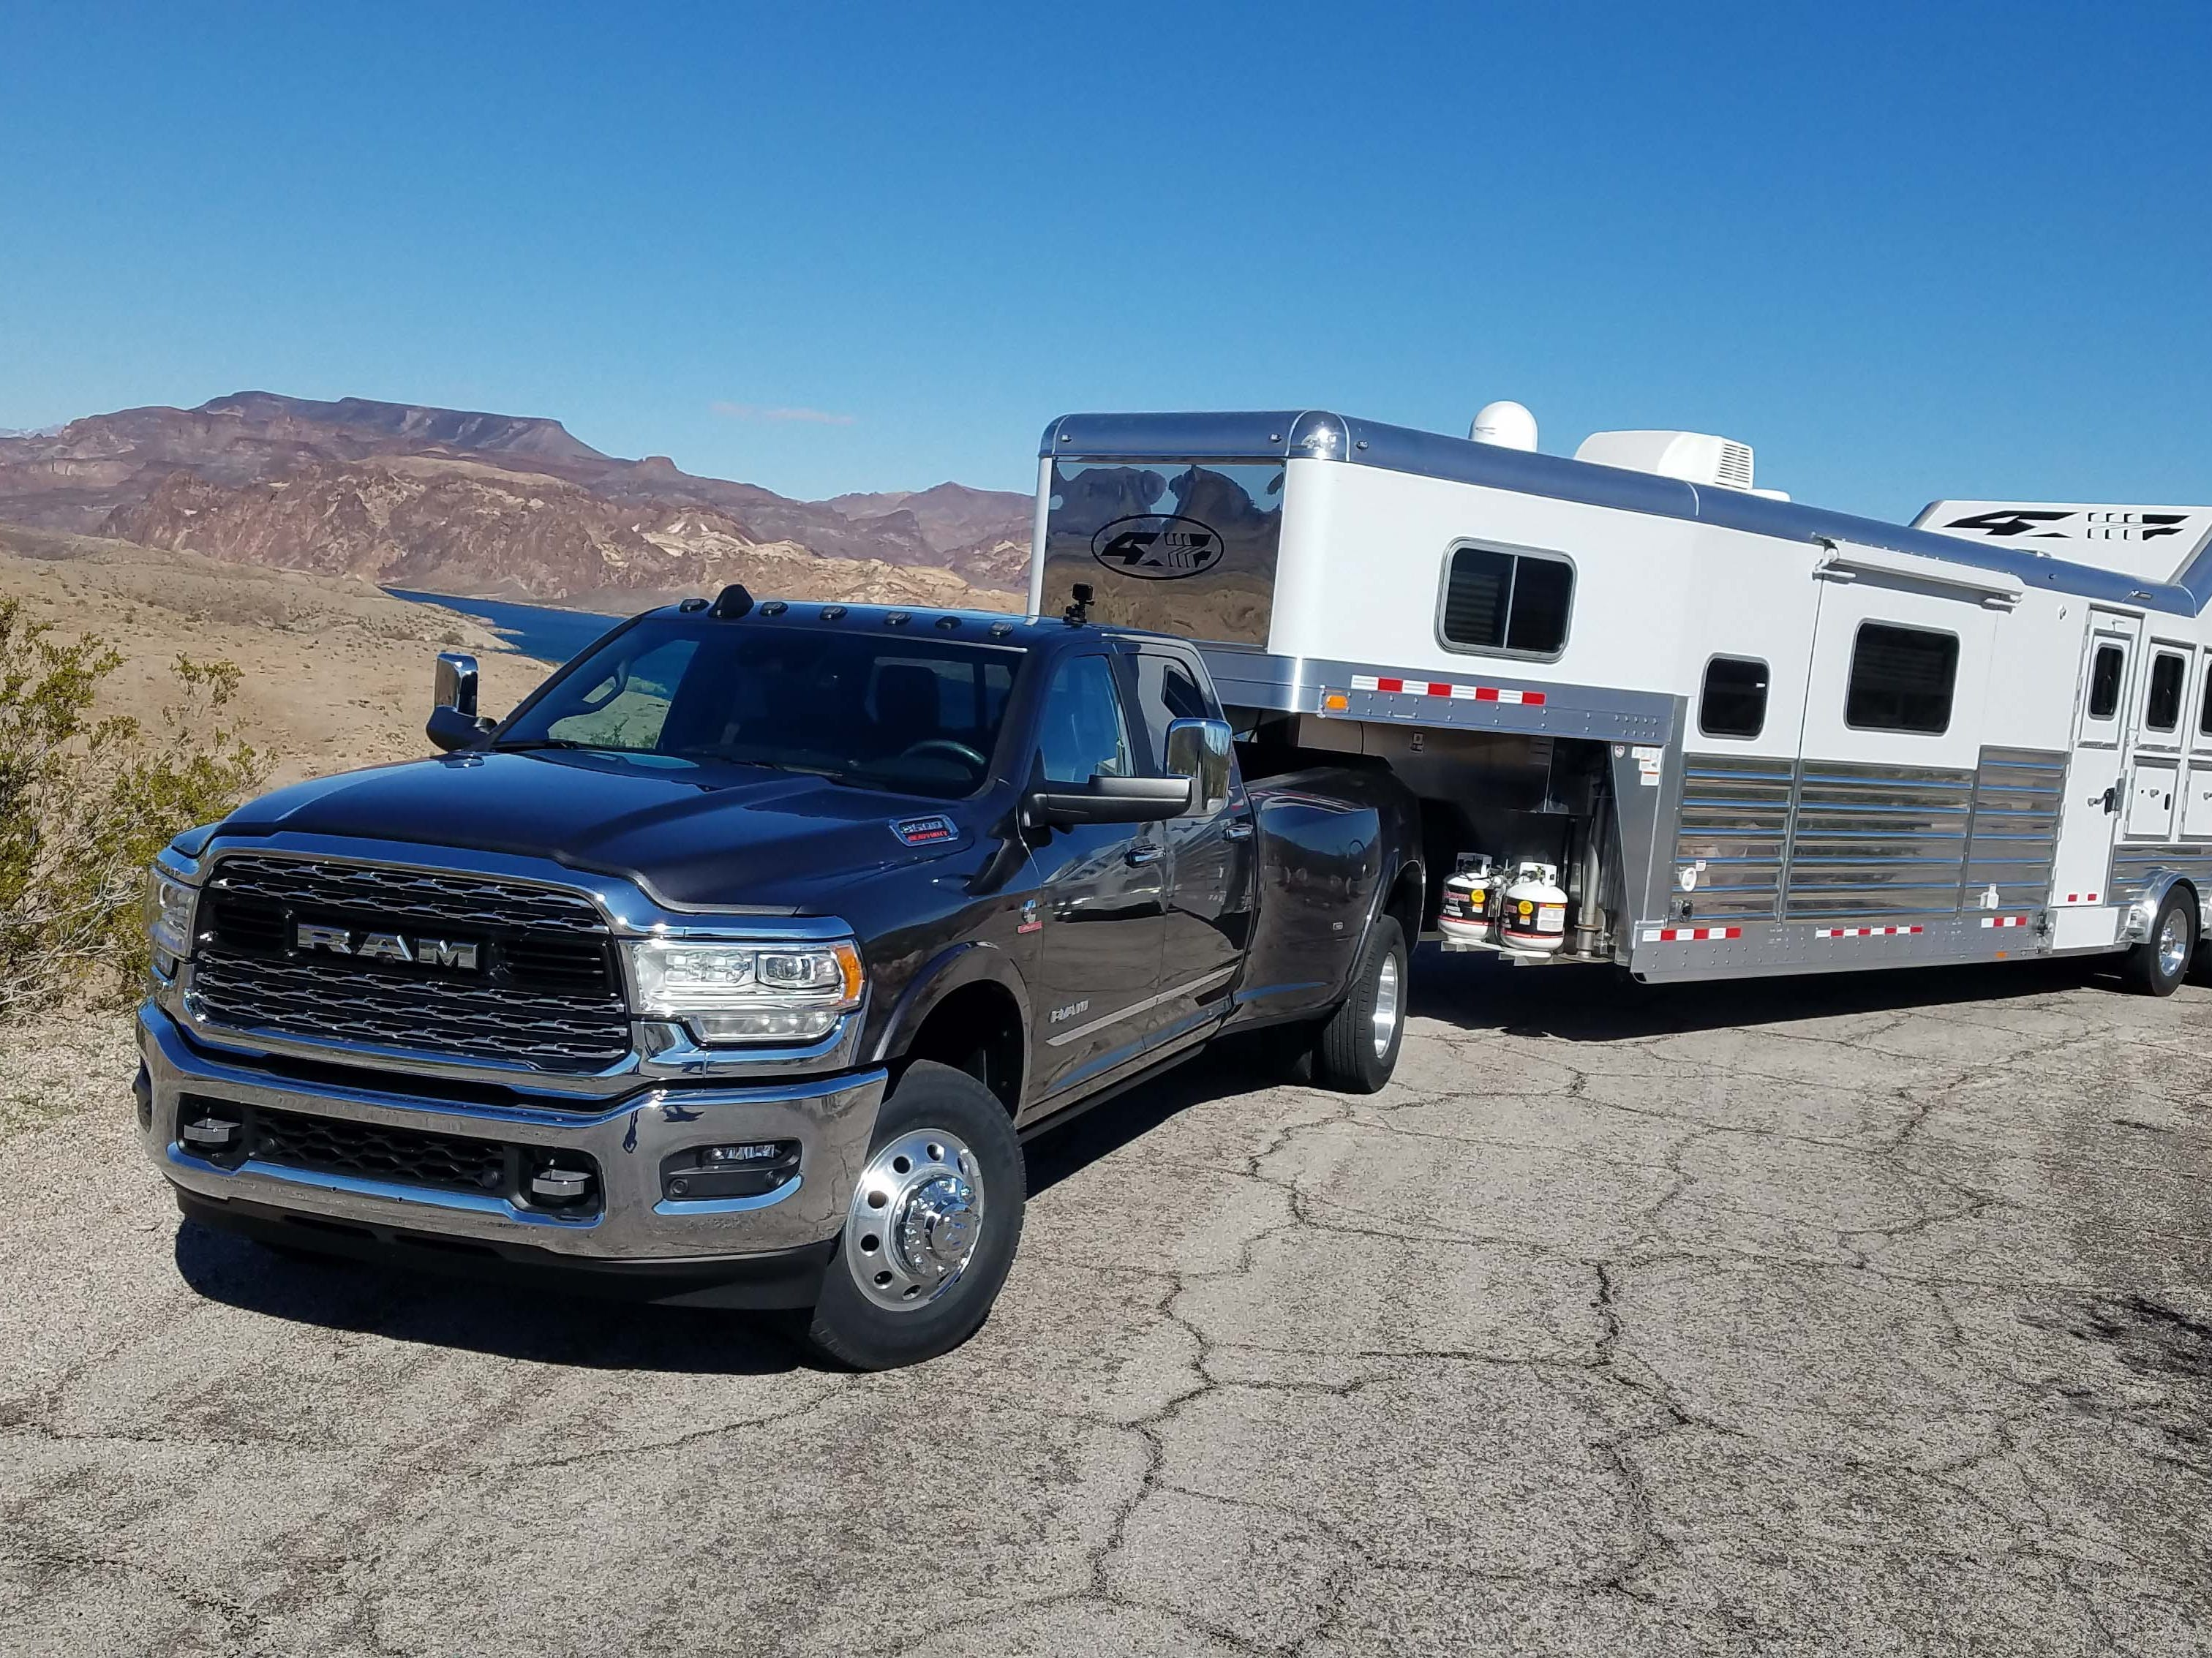 Out for a tow. The Ram 3500 Heavy Duty easily pulls this 19,000-pound horse trailer around the hills of Nevada.